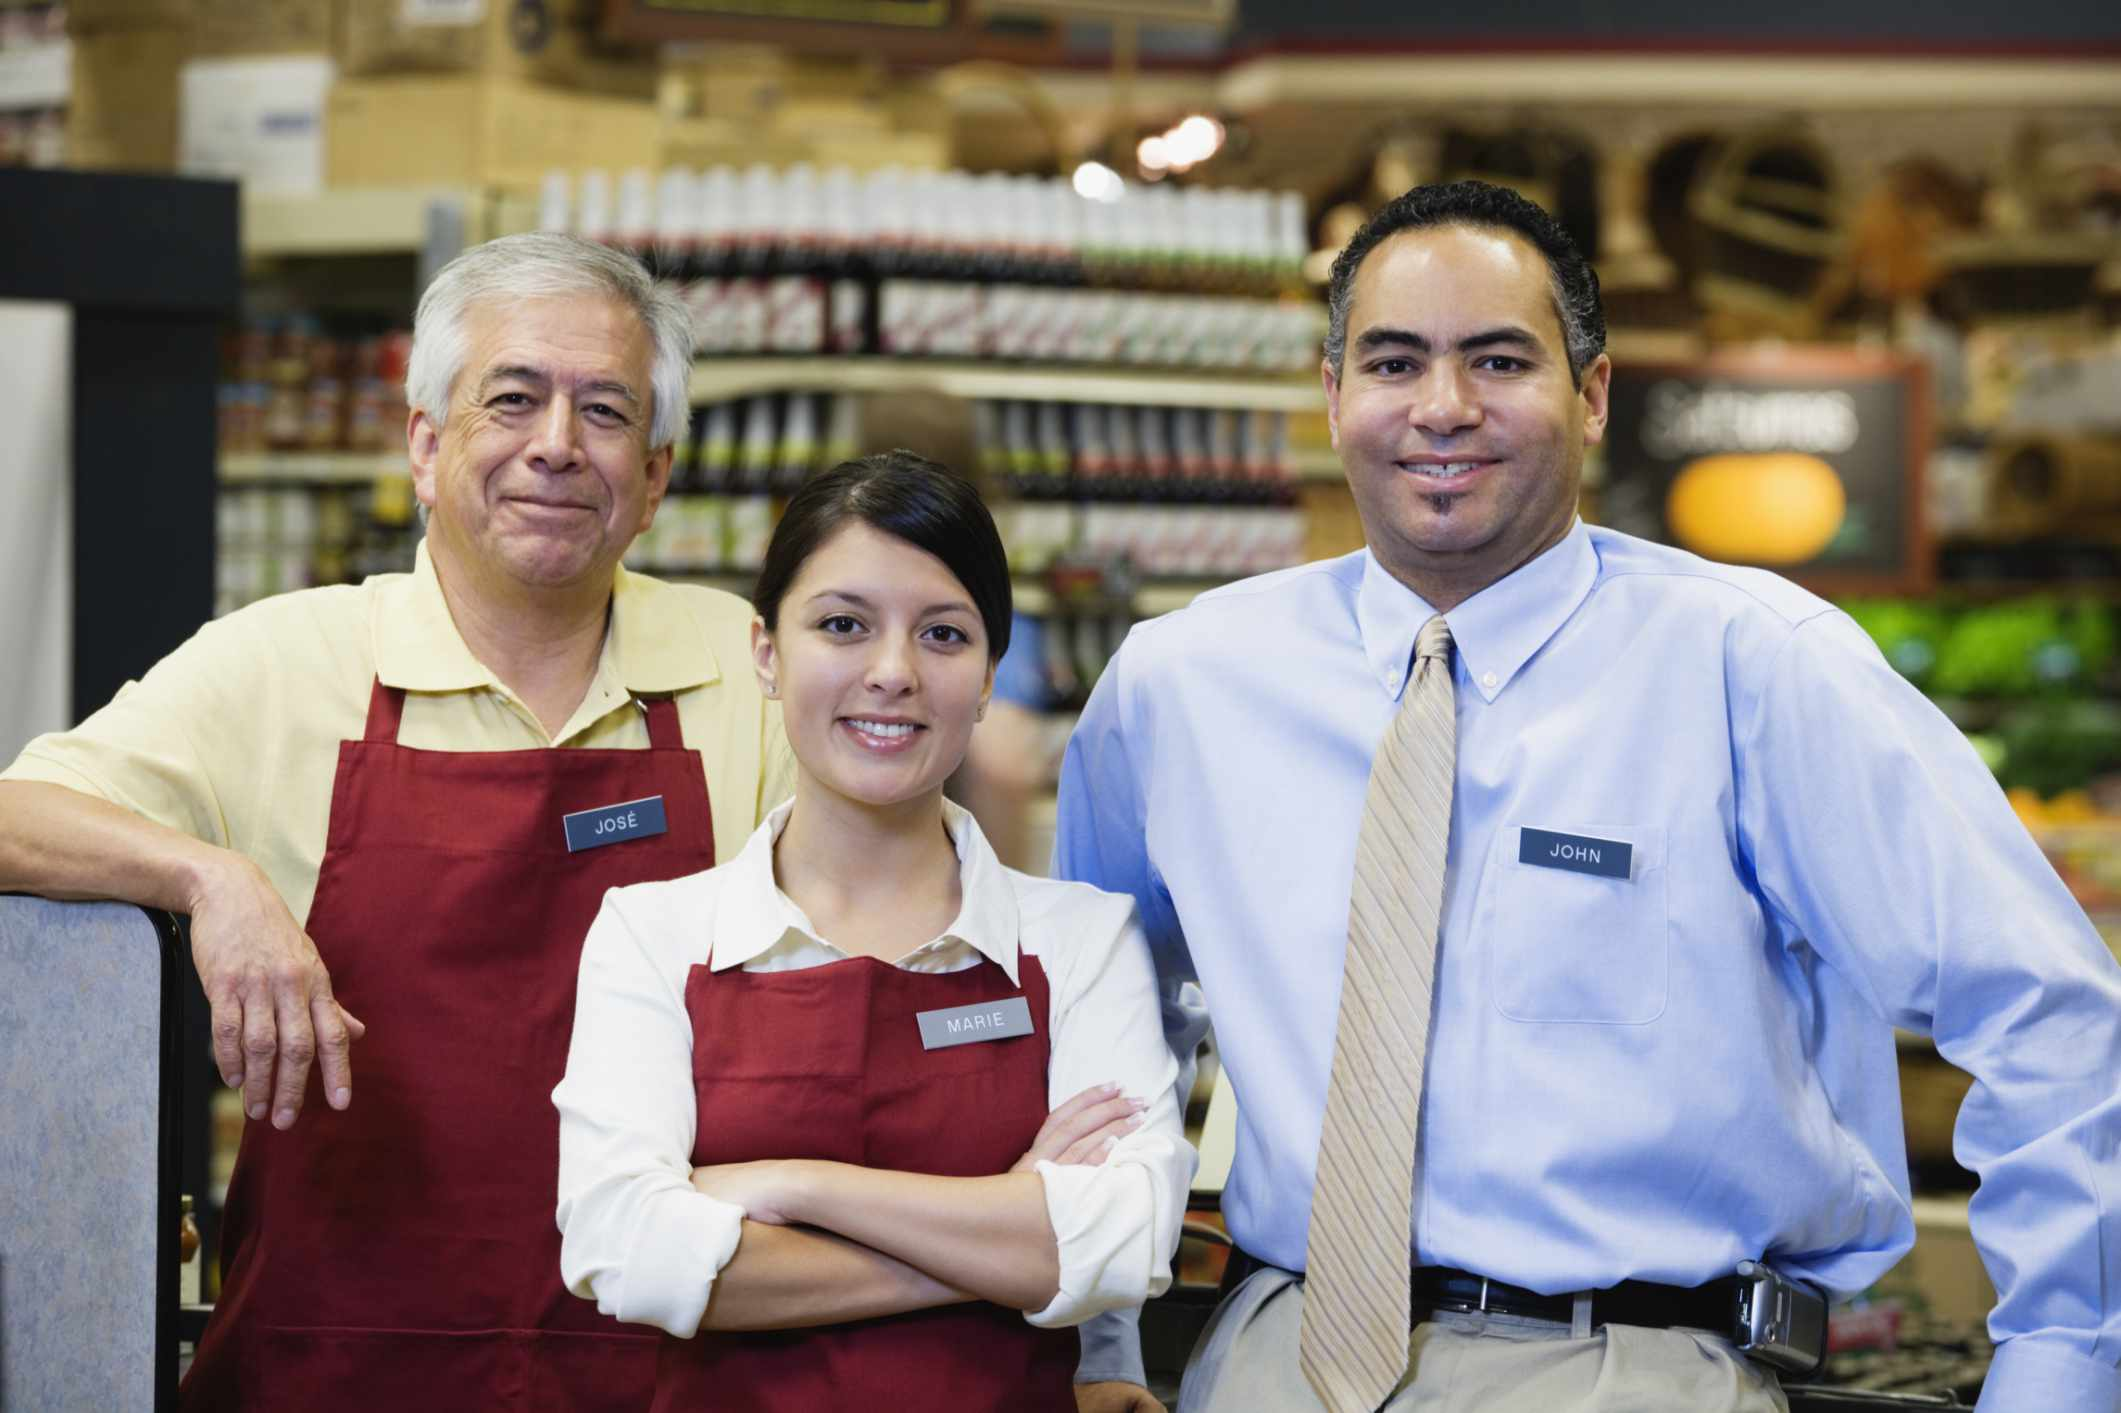 store_manager_73729853.jpg